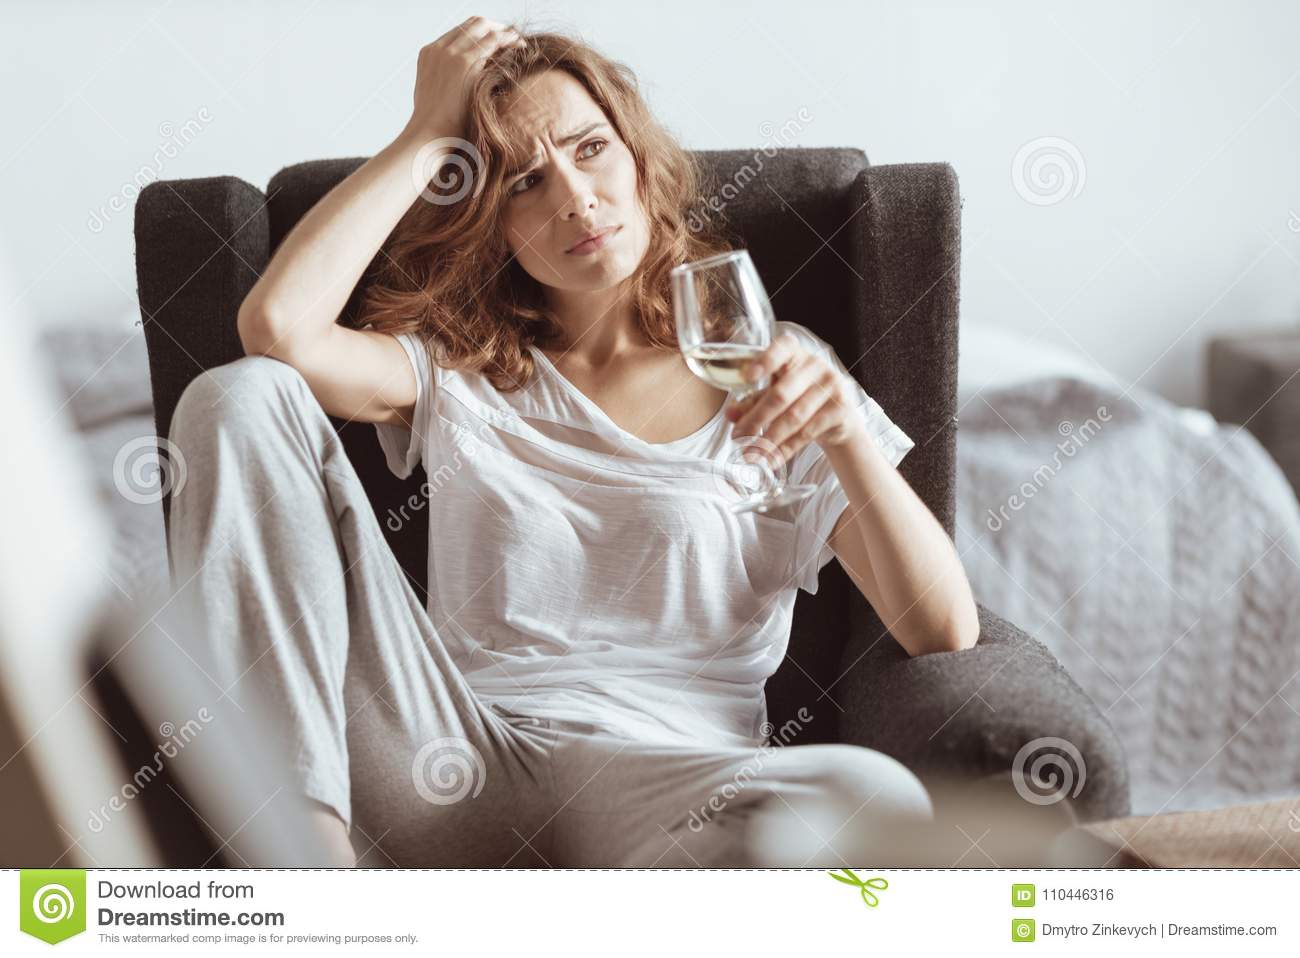 Download Worried Lady Thinking About Her Problems While Drinking Wine Stock Photo - Image of indoors, despondent: 110446316